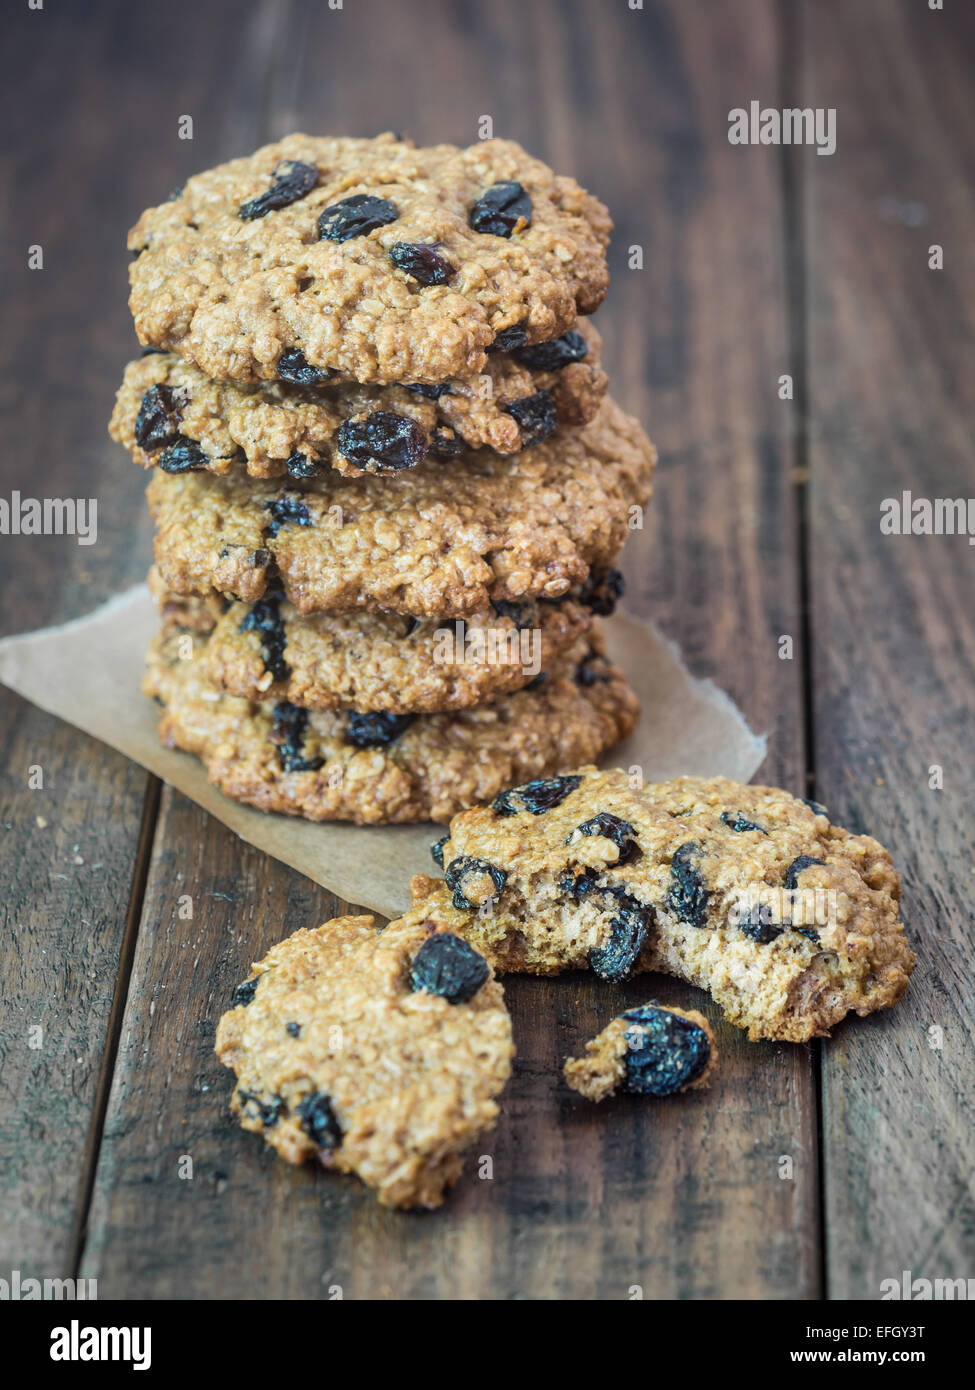 Homemade wholemeal spelt oatmeal cookies. - Stock Image